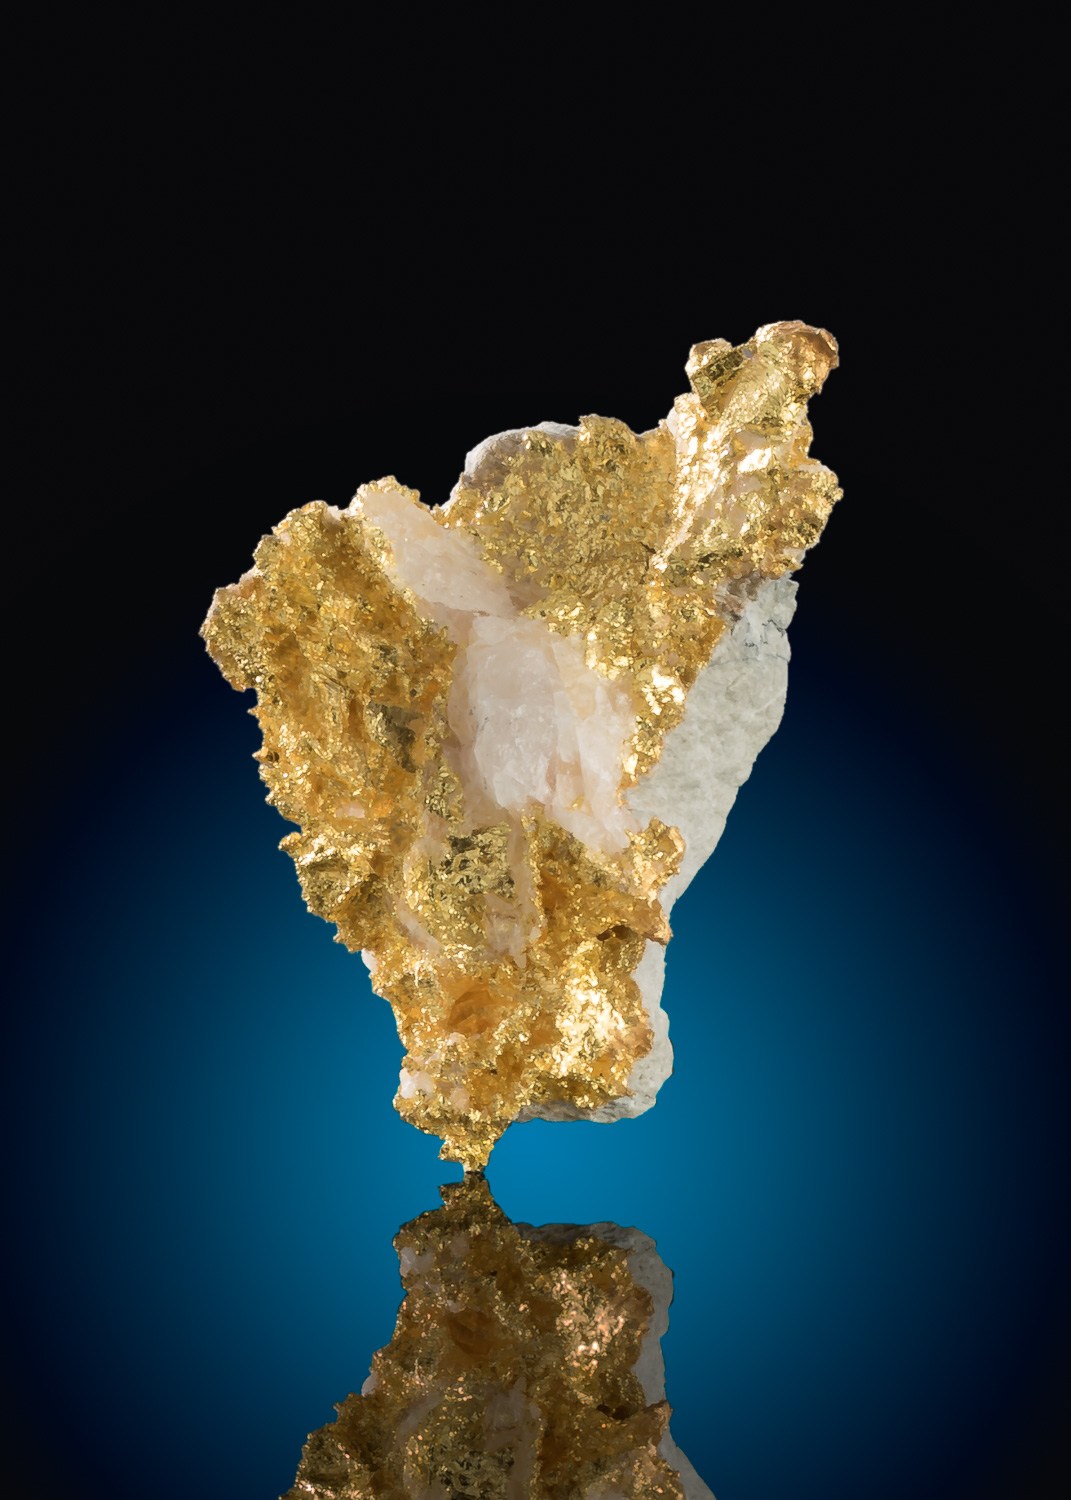 Brilliant Yellow Gold in Quartz - Colorado Quartz Gold Mine